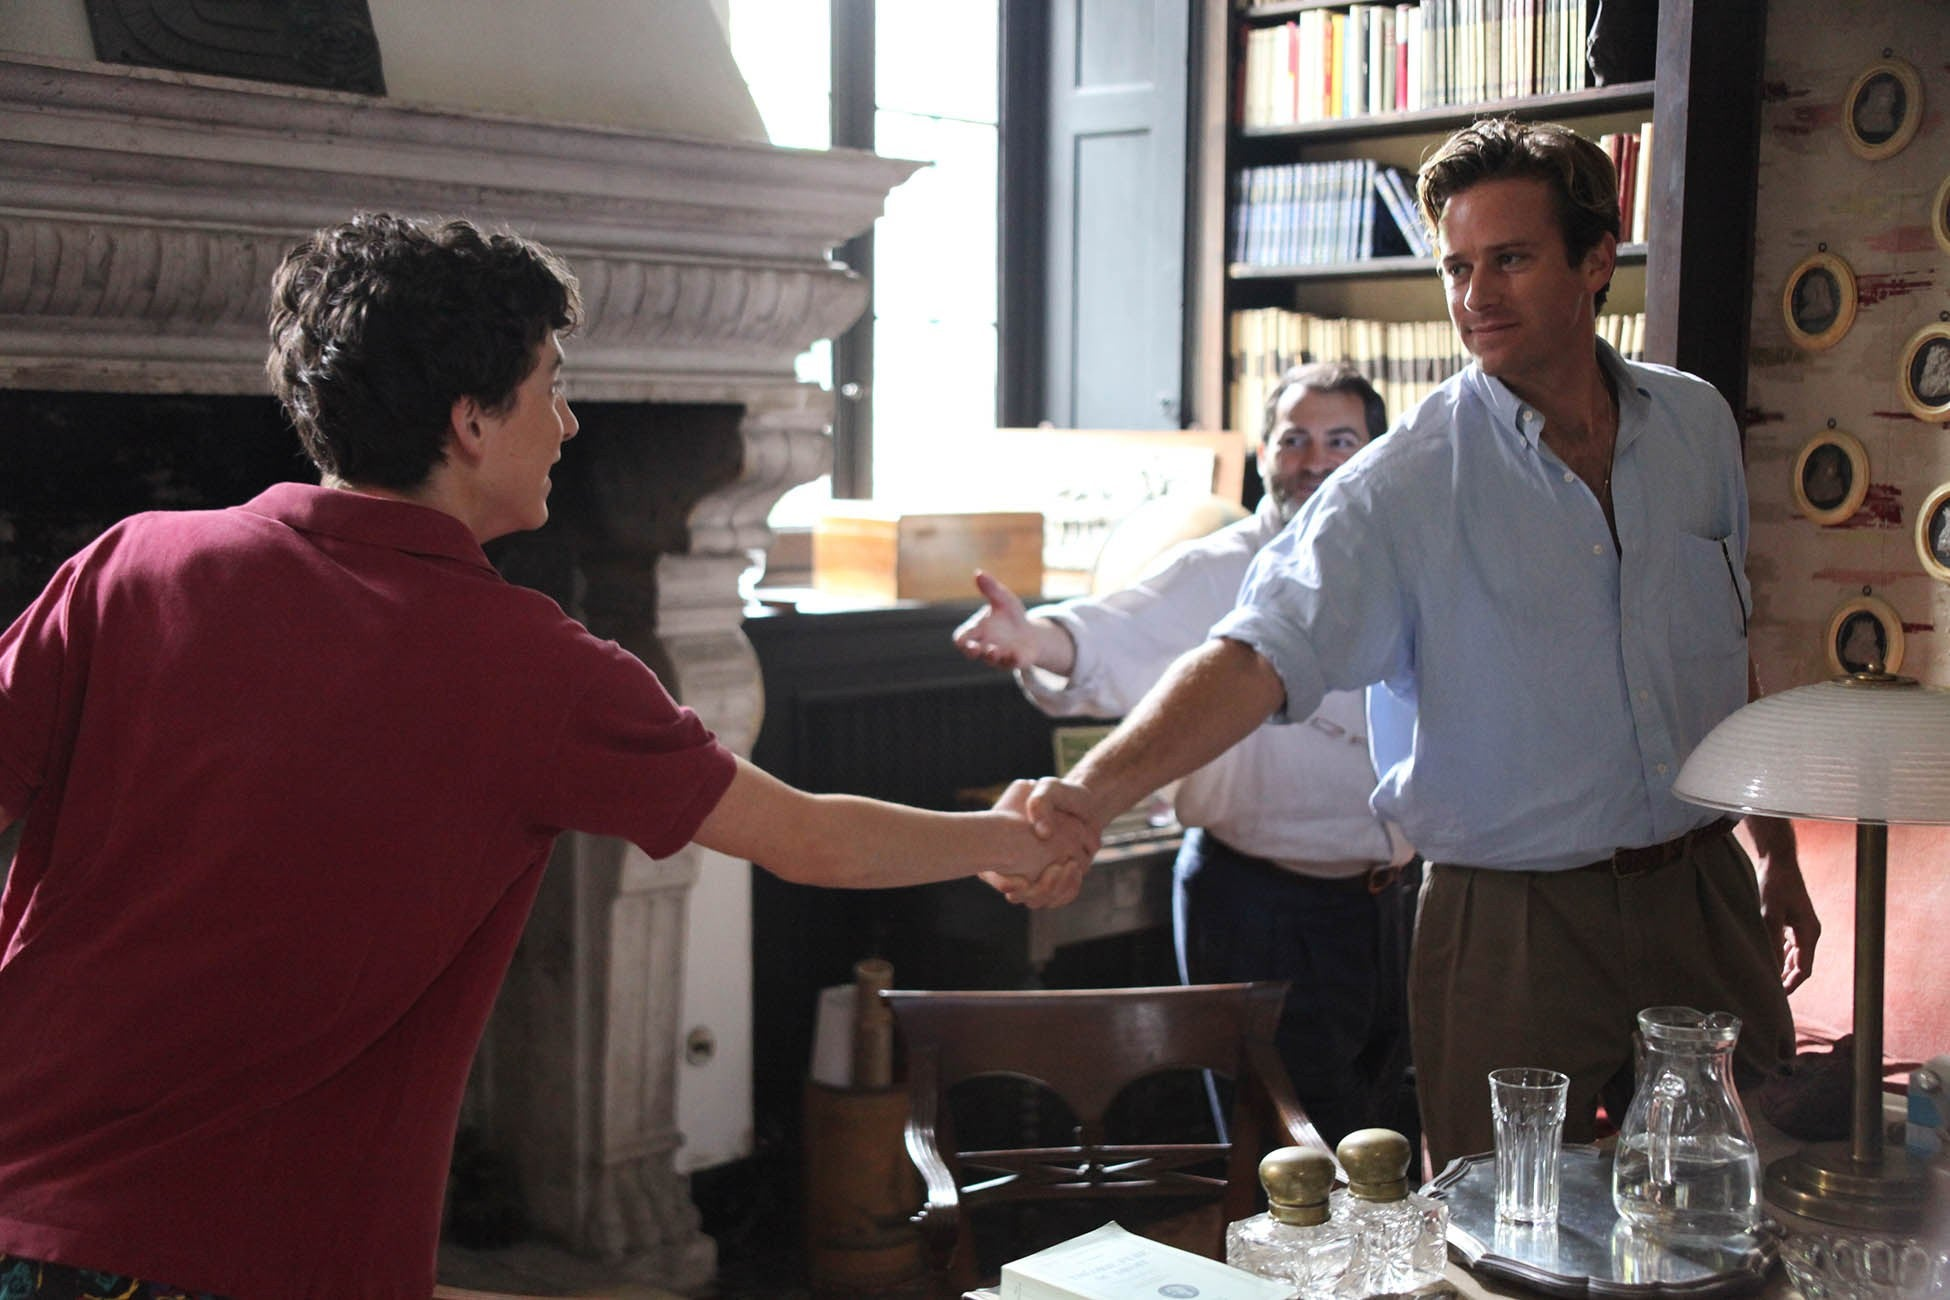 Call Me By Your Name Brings Warmth Cinephile Class To Snowed In